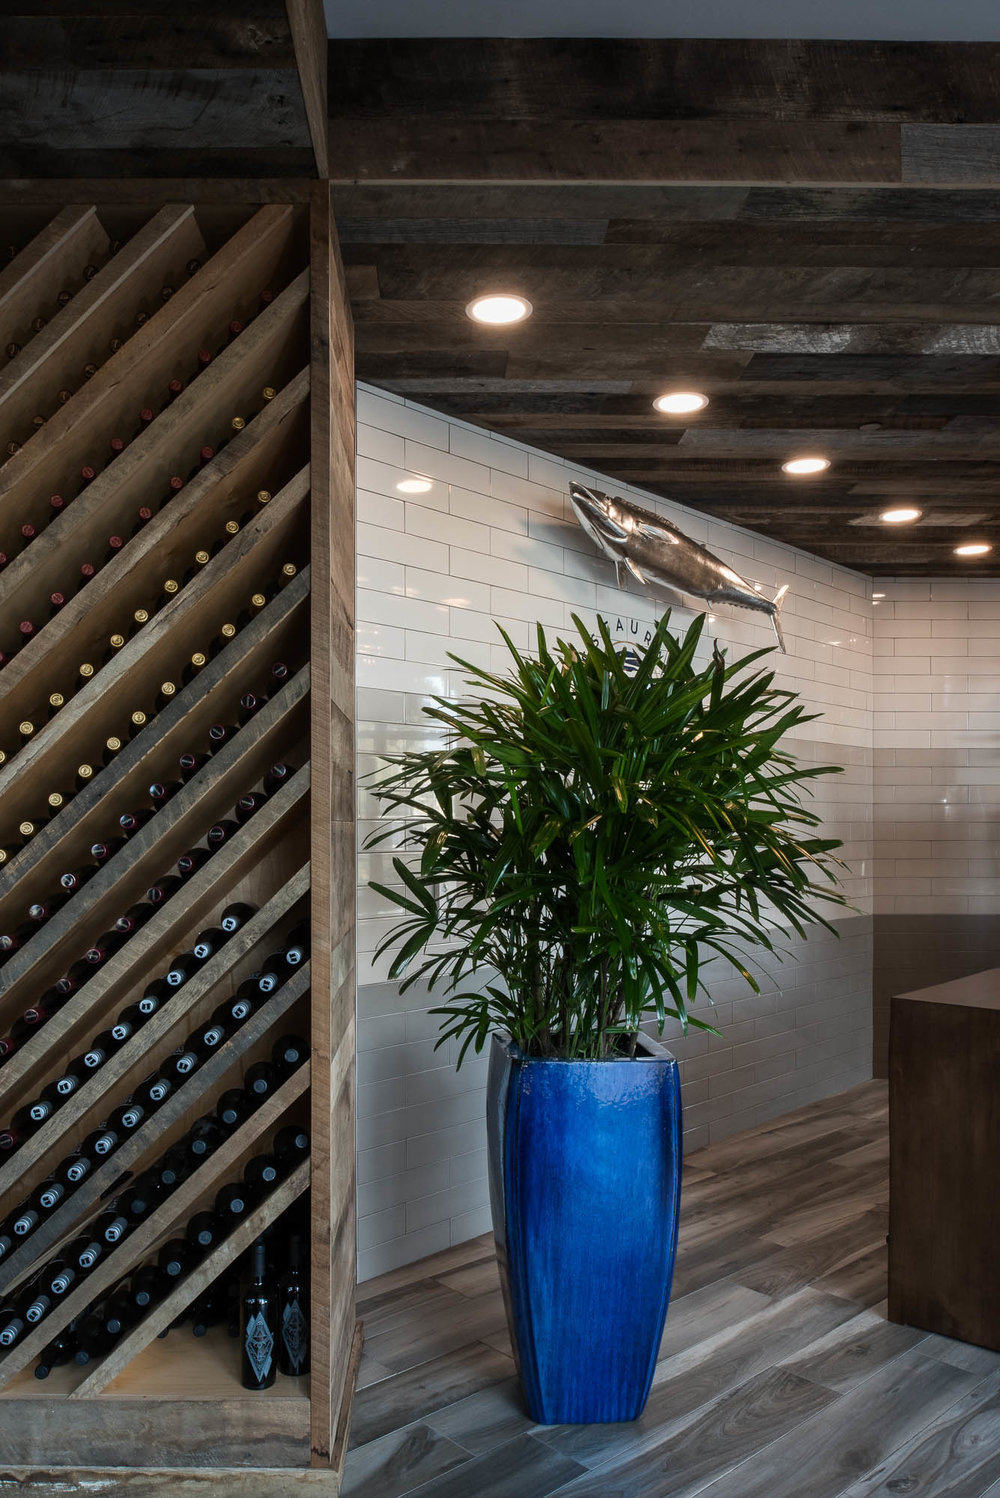 River and Post Restaurant Rooftop Lounge Jacksonville Florida Hostess Stand Entrance Commercial Interior Design reclaimed wood subway tile wine rack.jpg